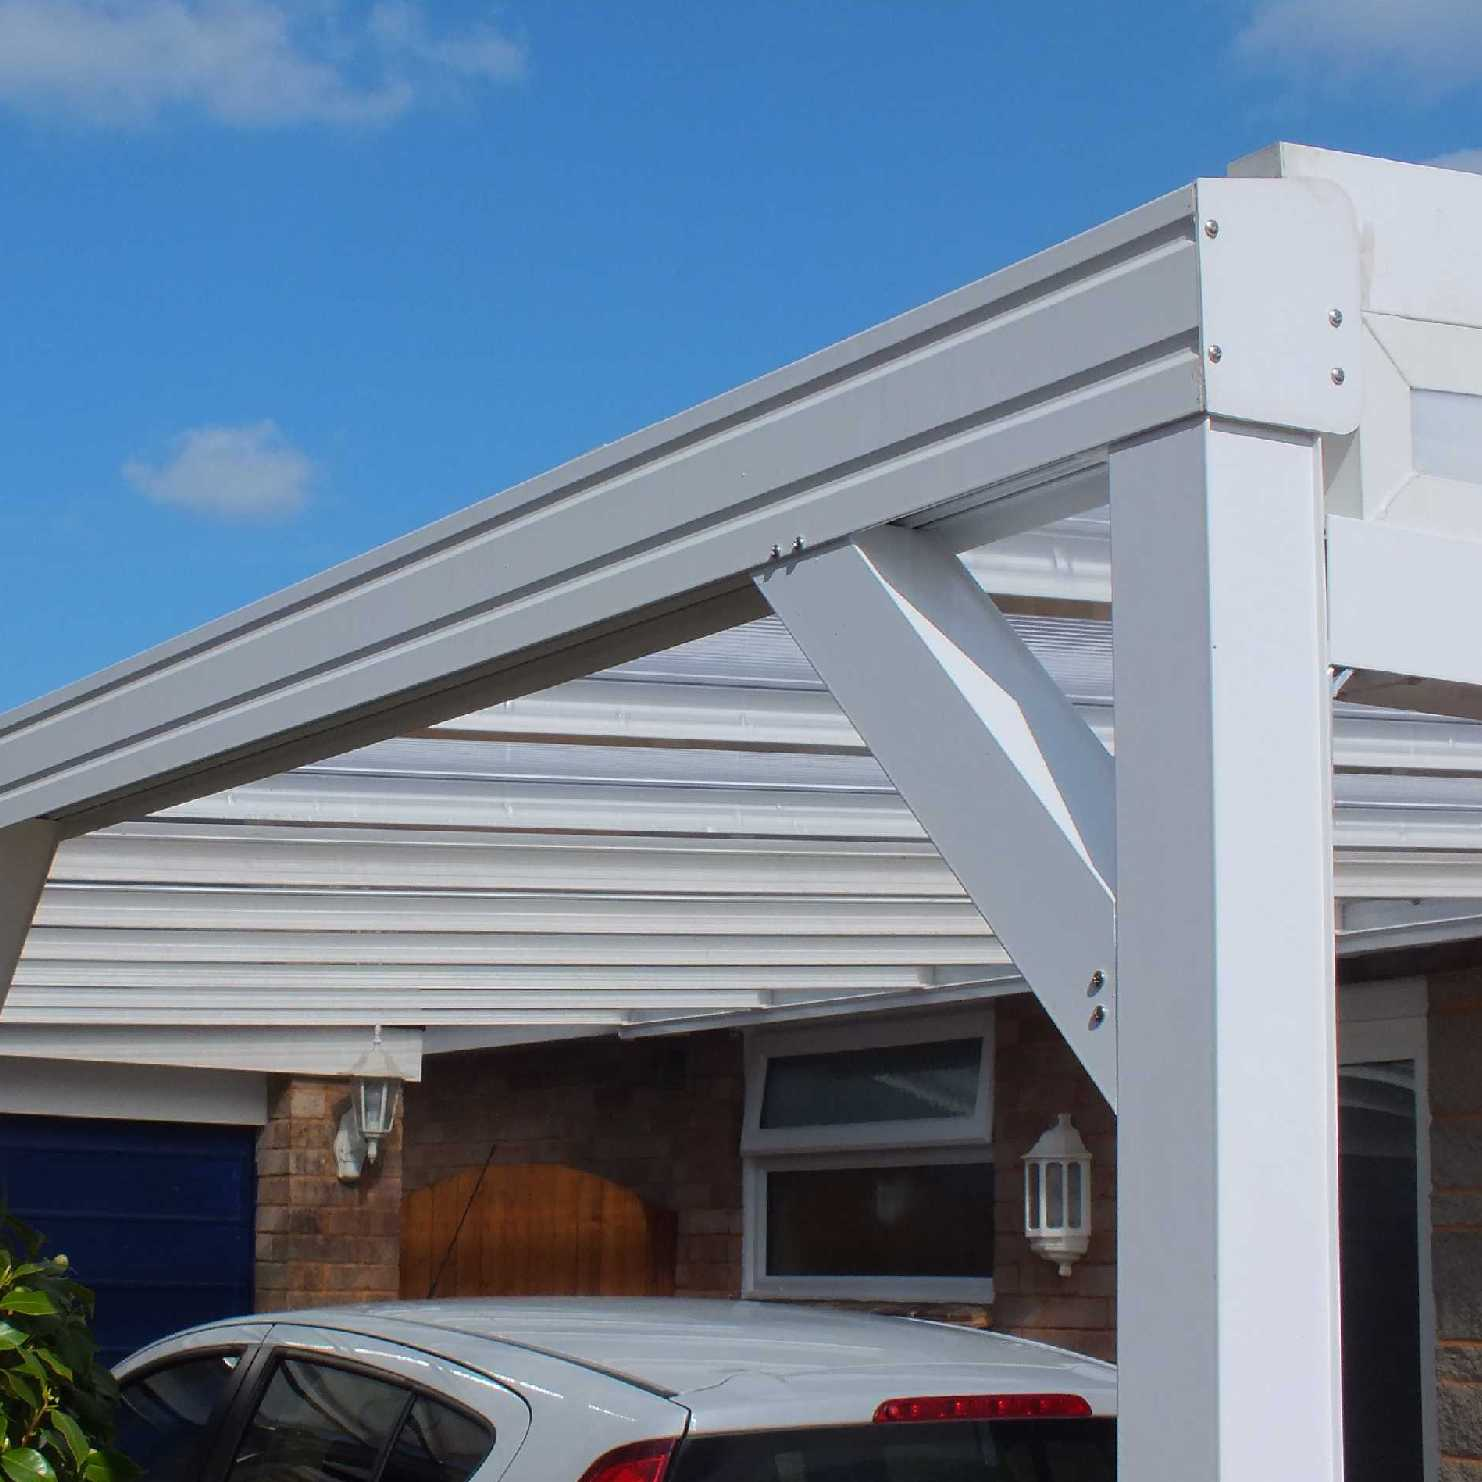 Great deals on Omega Smart White Lean-To Canopy with 16mm Polycarbonate Glazing - 7.4m (W) x 4.5m (P), (4) Supporting Posts